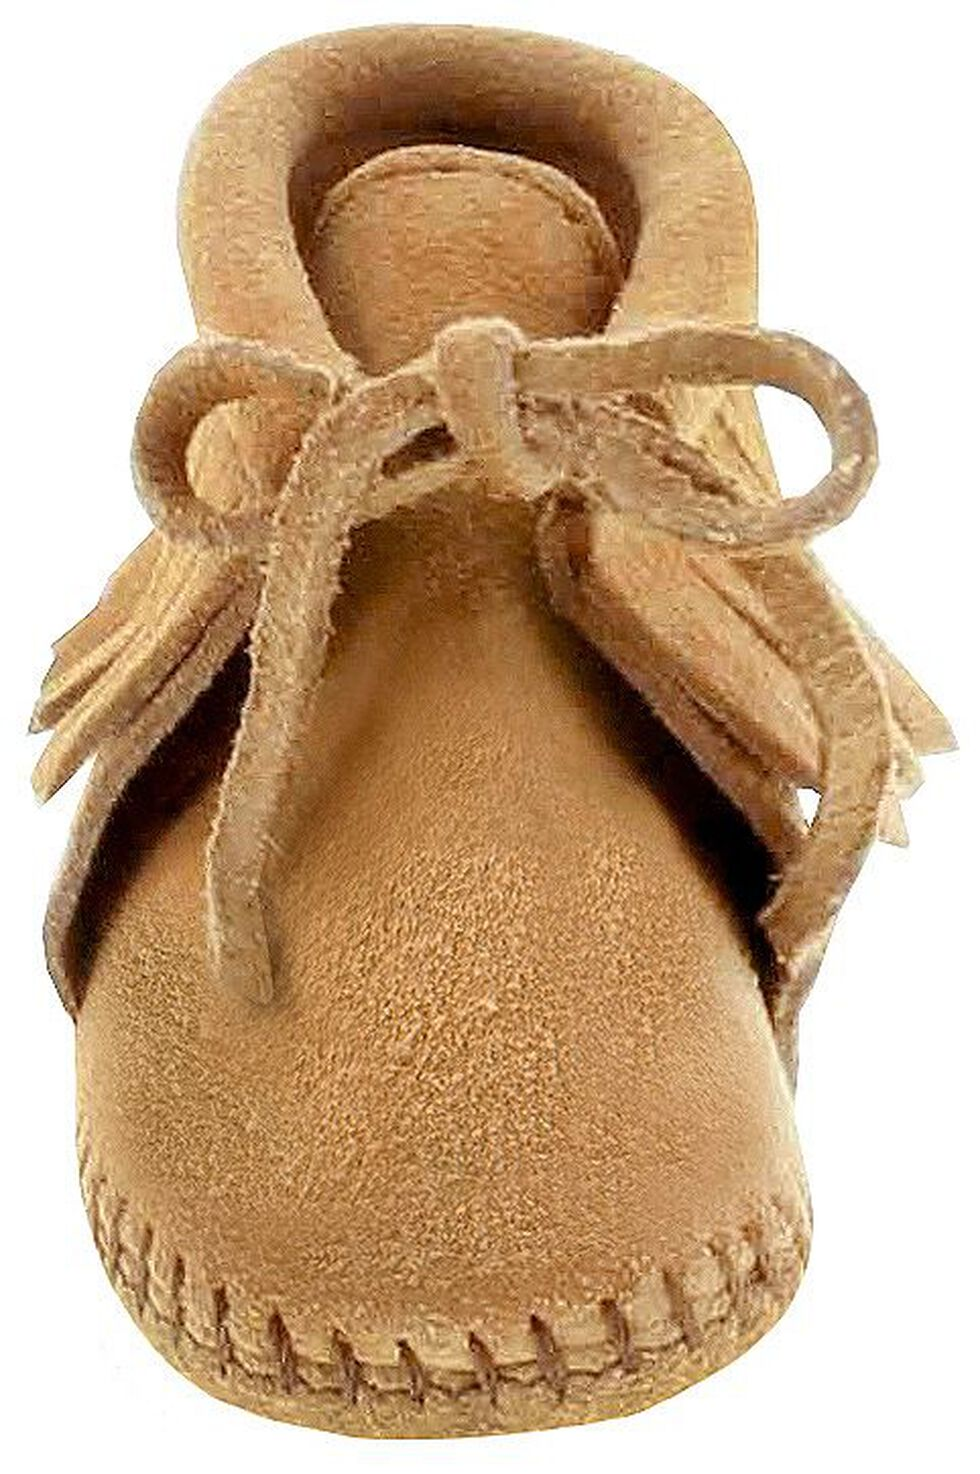 Minnetonka Infant Boys' Fringe Bootie Moccasins, Tan, hi-res